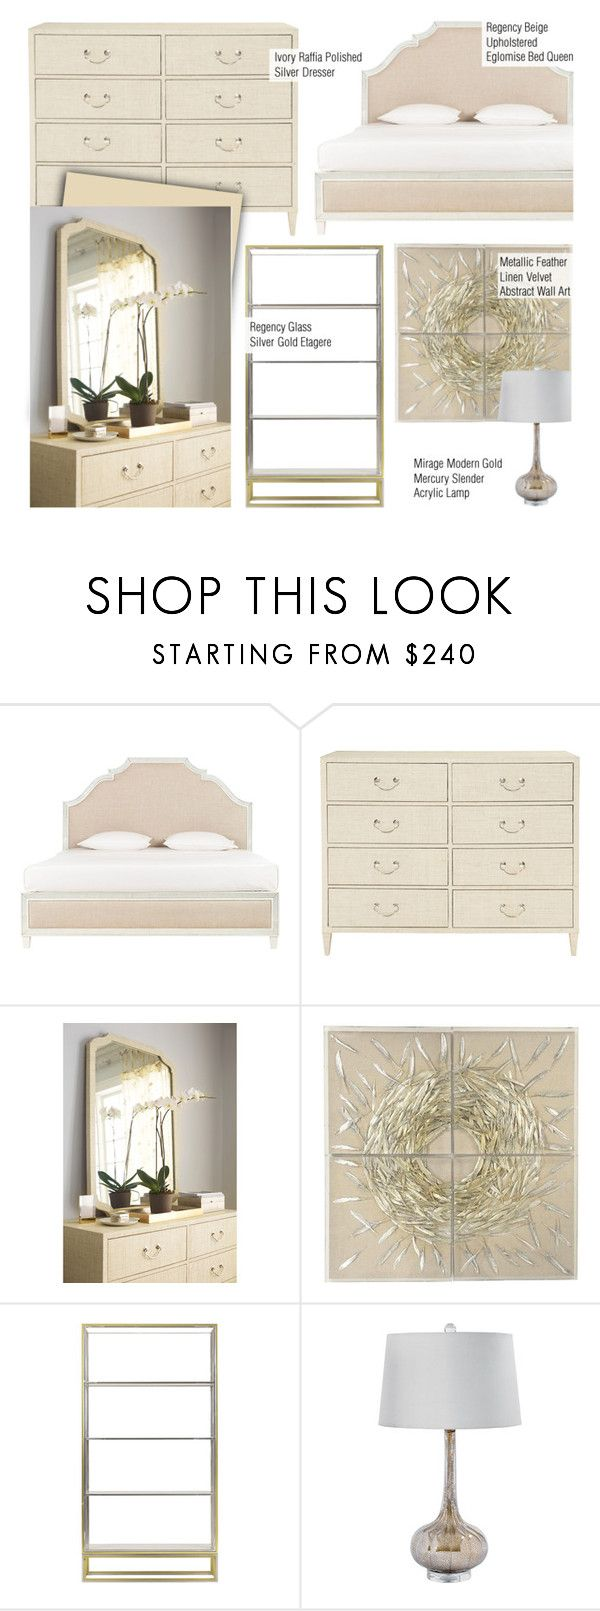 """""""Modern Bedroom Decor"""" by kathykuohome ❤ liked on Polyvore featuring interior, interiors, interior design, home, home decor, interior decorating, bedroom, modern, homedecor and modernclassic"""